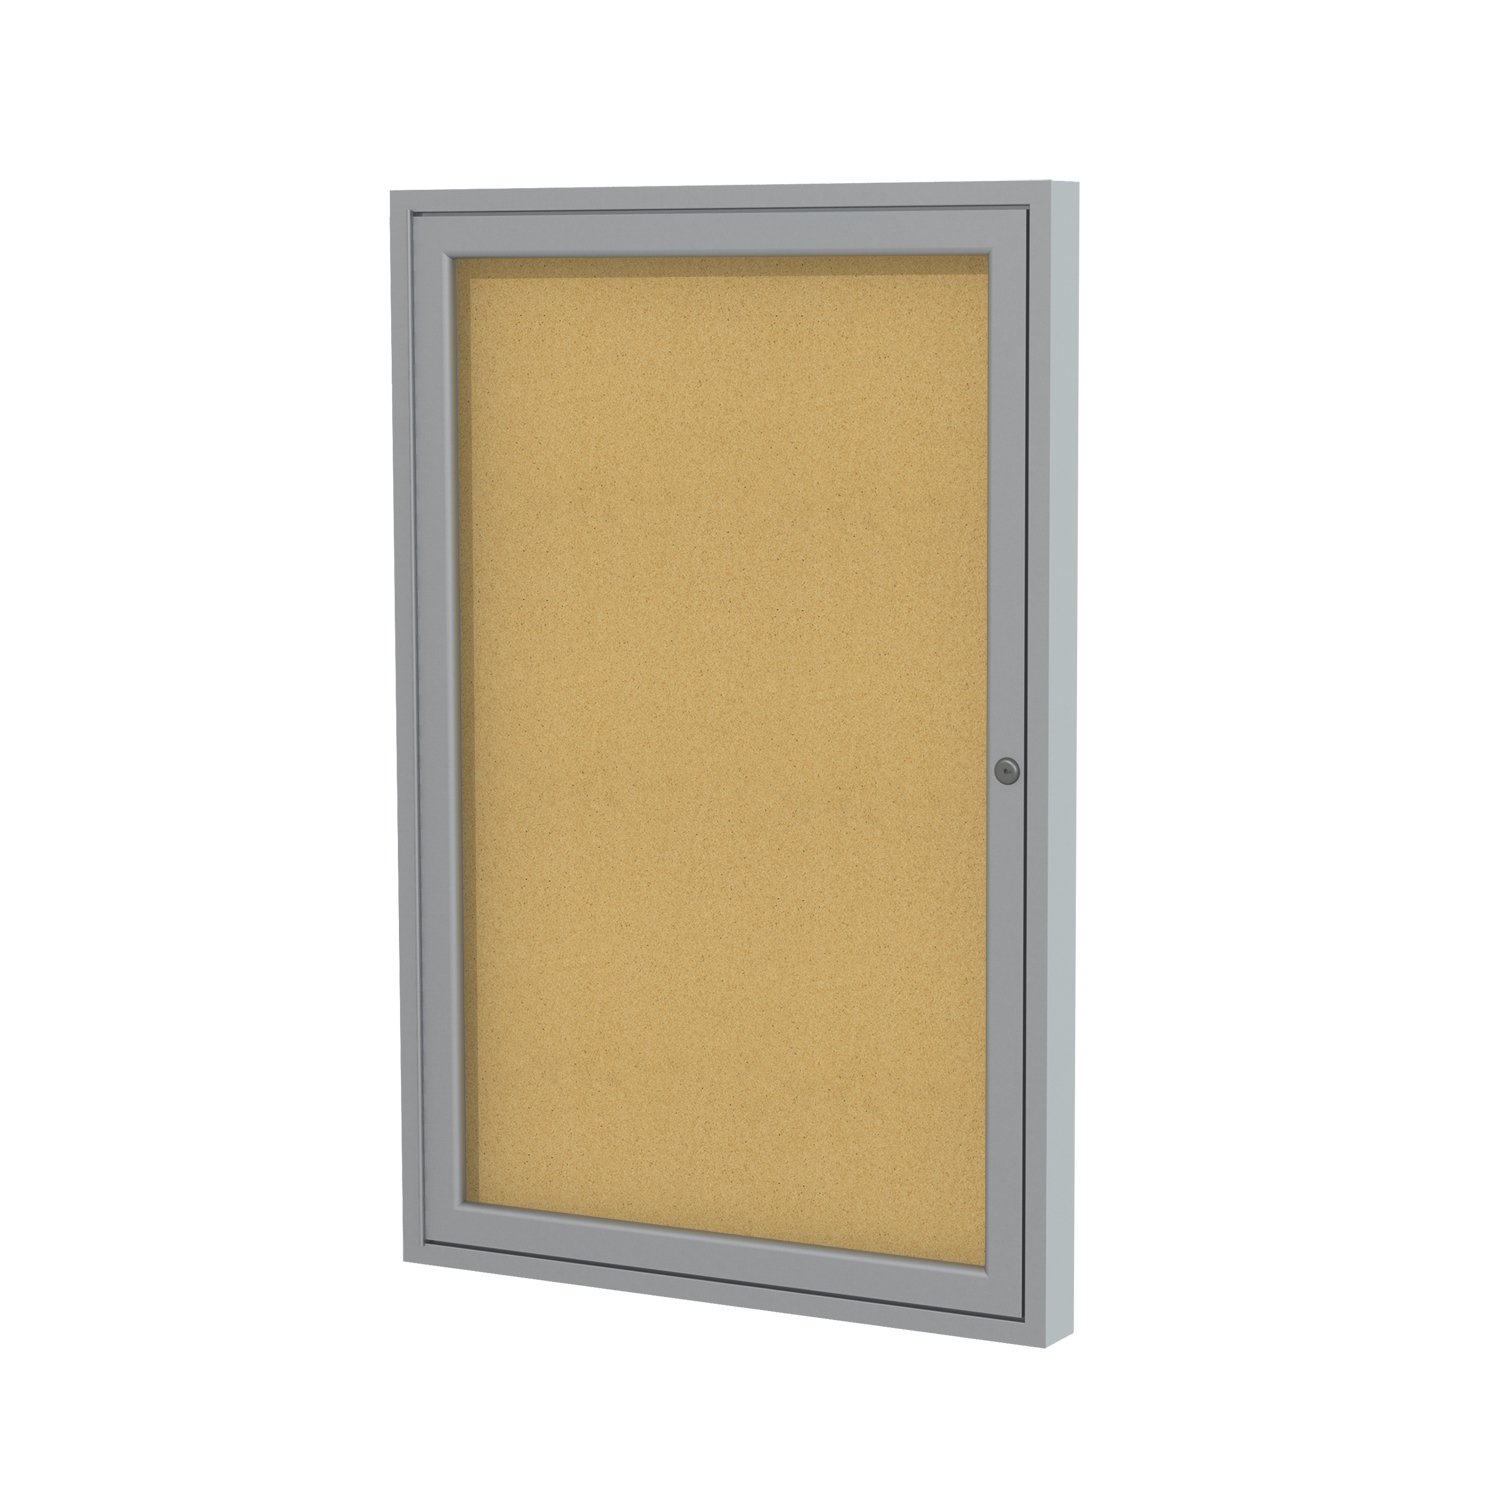 Ghent 36''x24''   1-Door indoor Enclosed Bulletin Board , Shatter Resistant, with Lock, Satin Aluminum Frame  - Natural Cork (PA13624K)  Made in the USA by Ghent